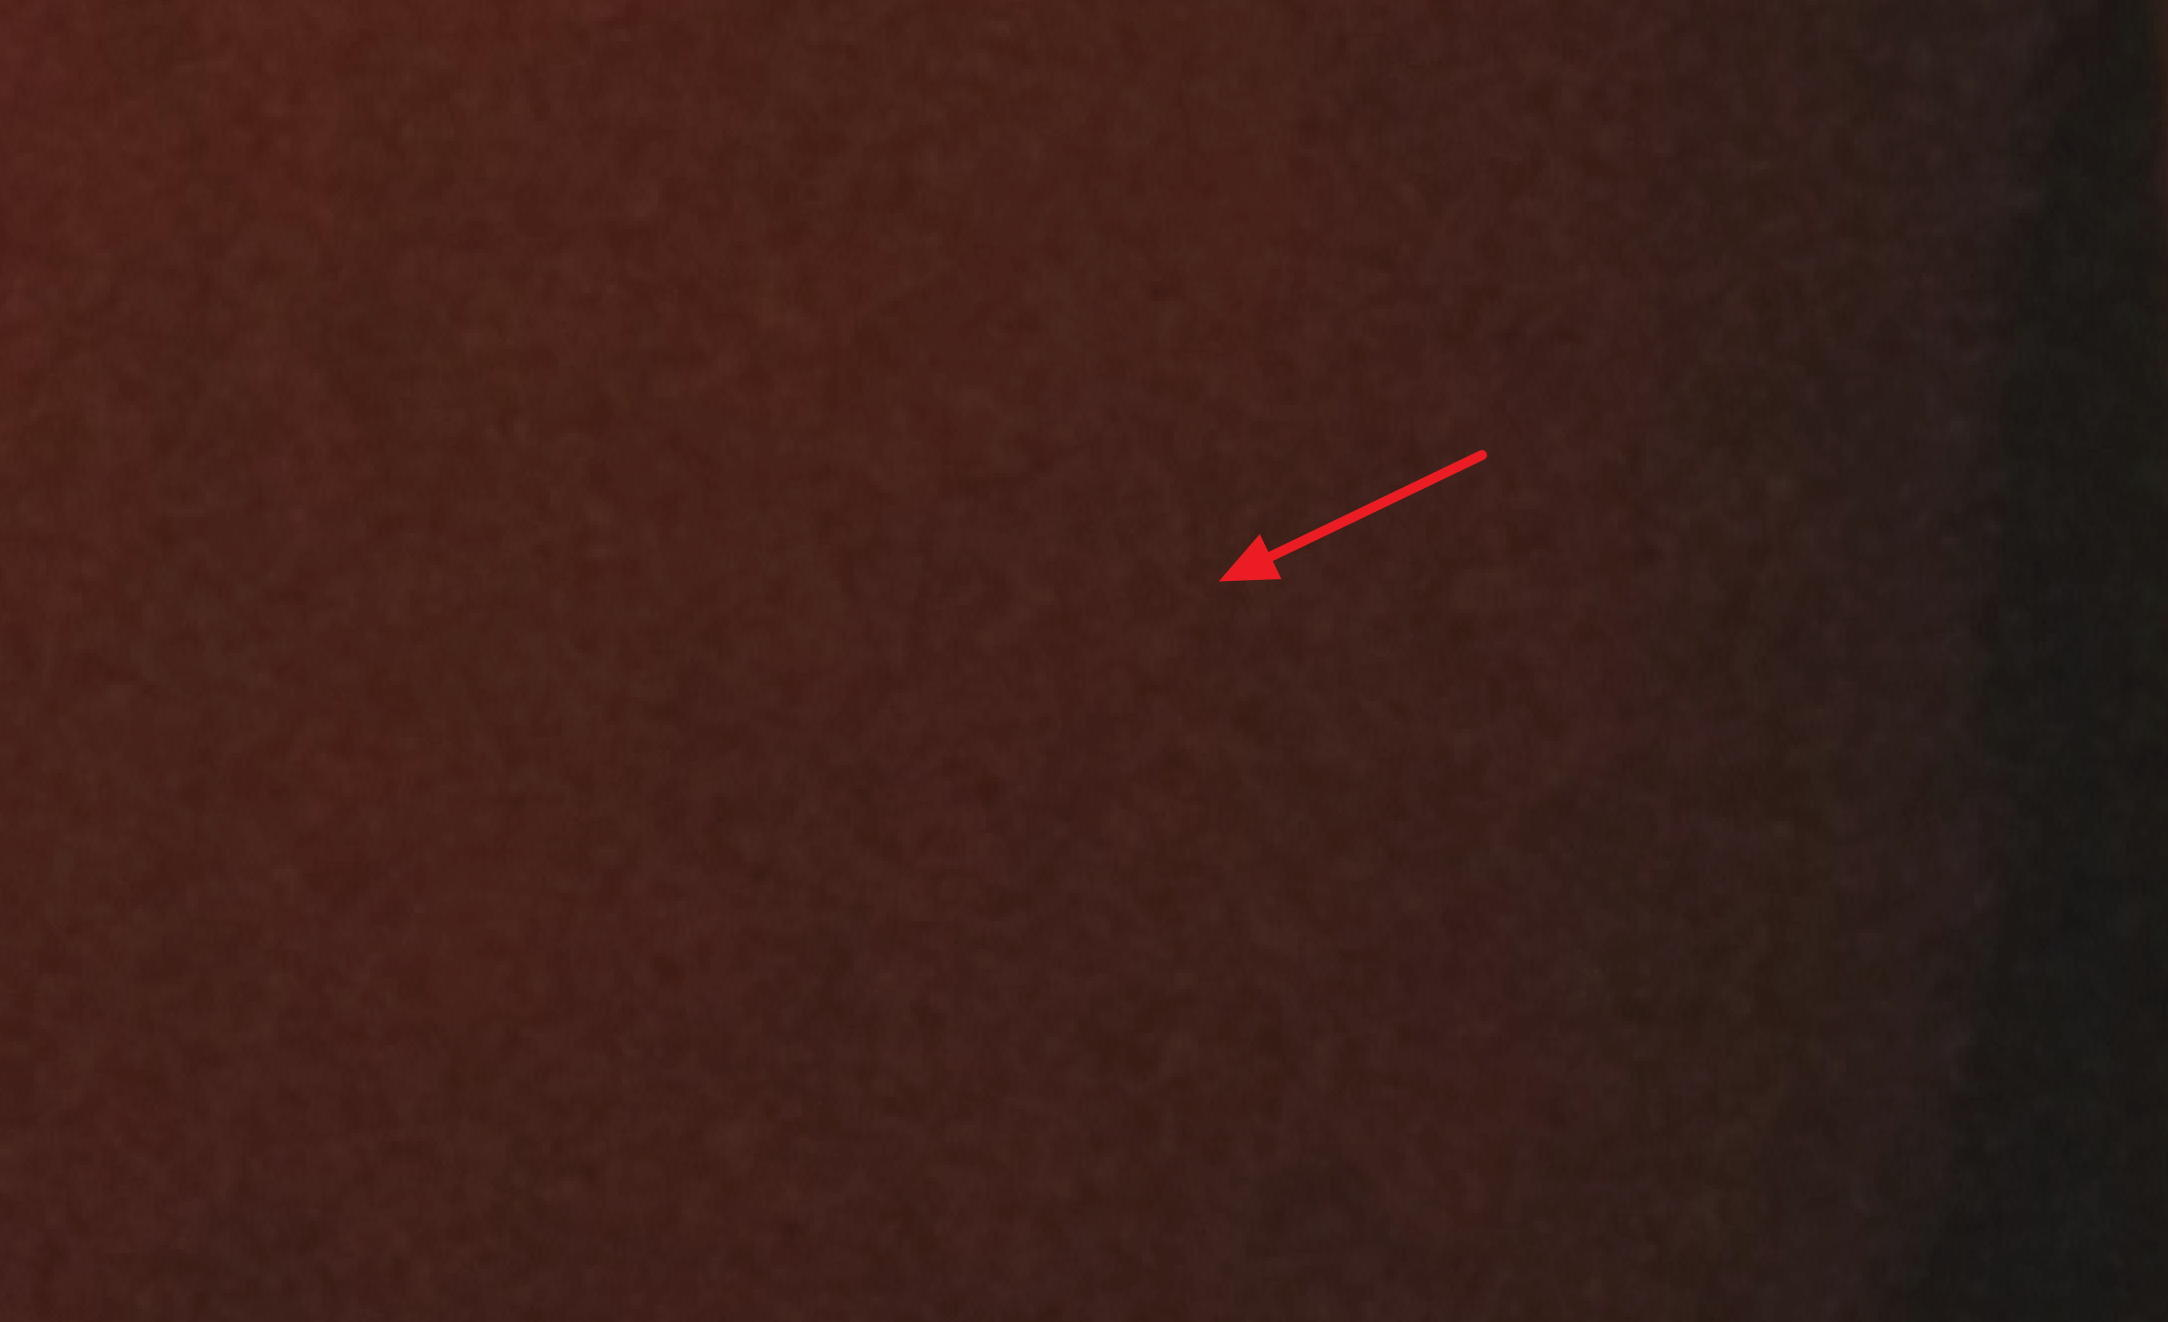 Help! There are creepy faces in my photograph when I zoom in!